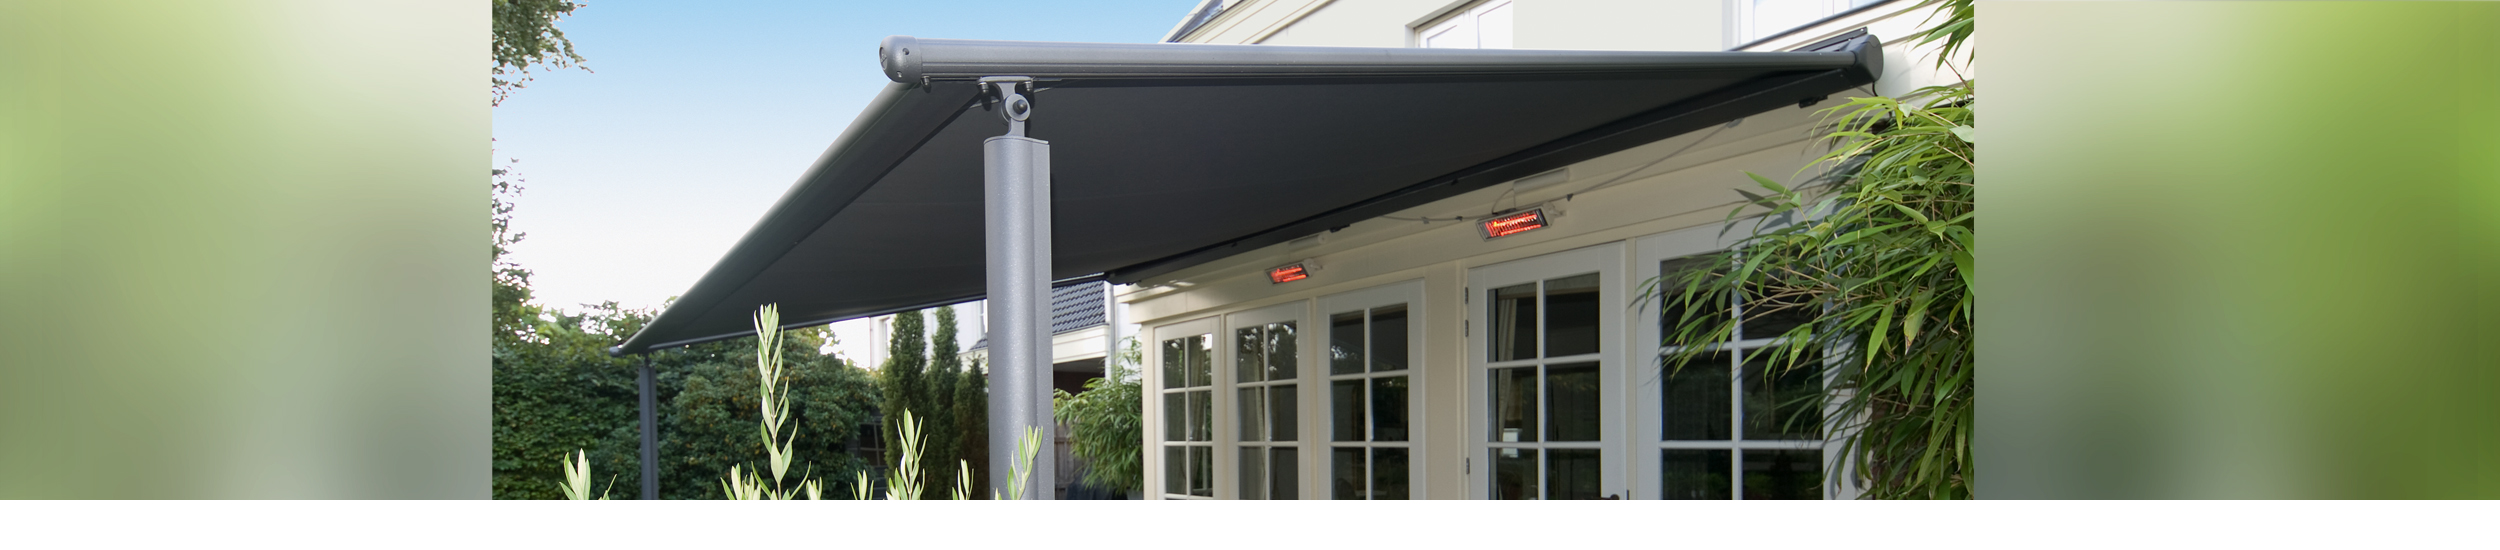 plaza home led weinor awnings. Black Bedroom Furniture Sets. Home Design Ideas